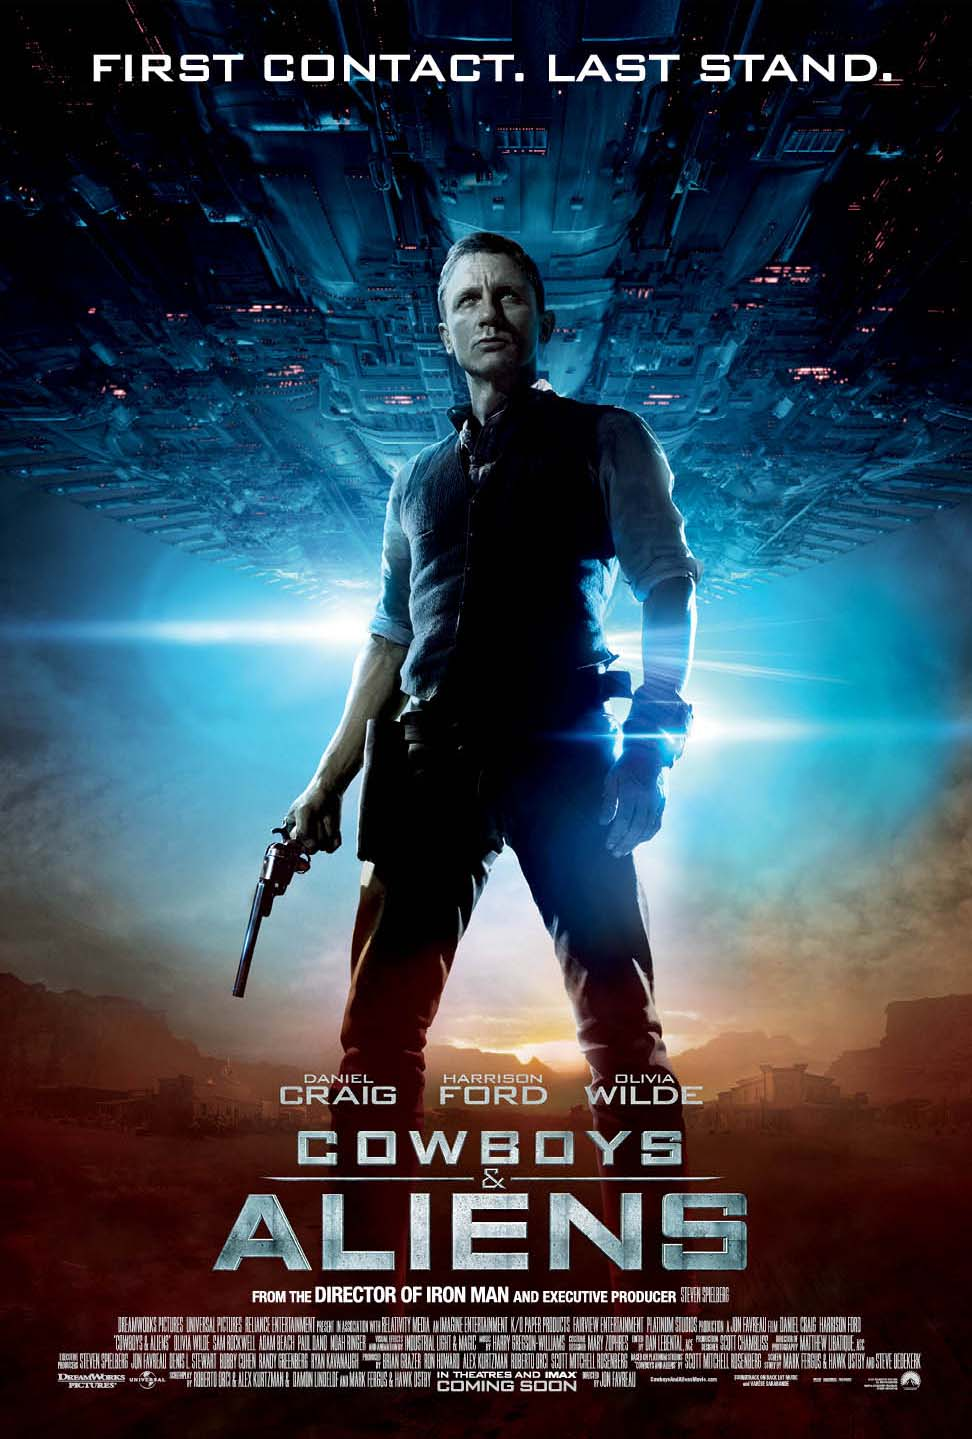 New International 'Cowboys And Aliens' Posters And TV Spot ...